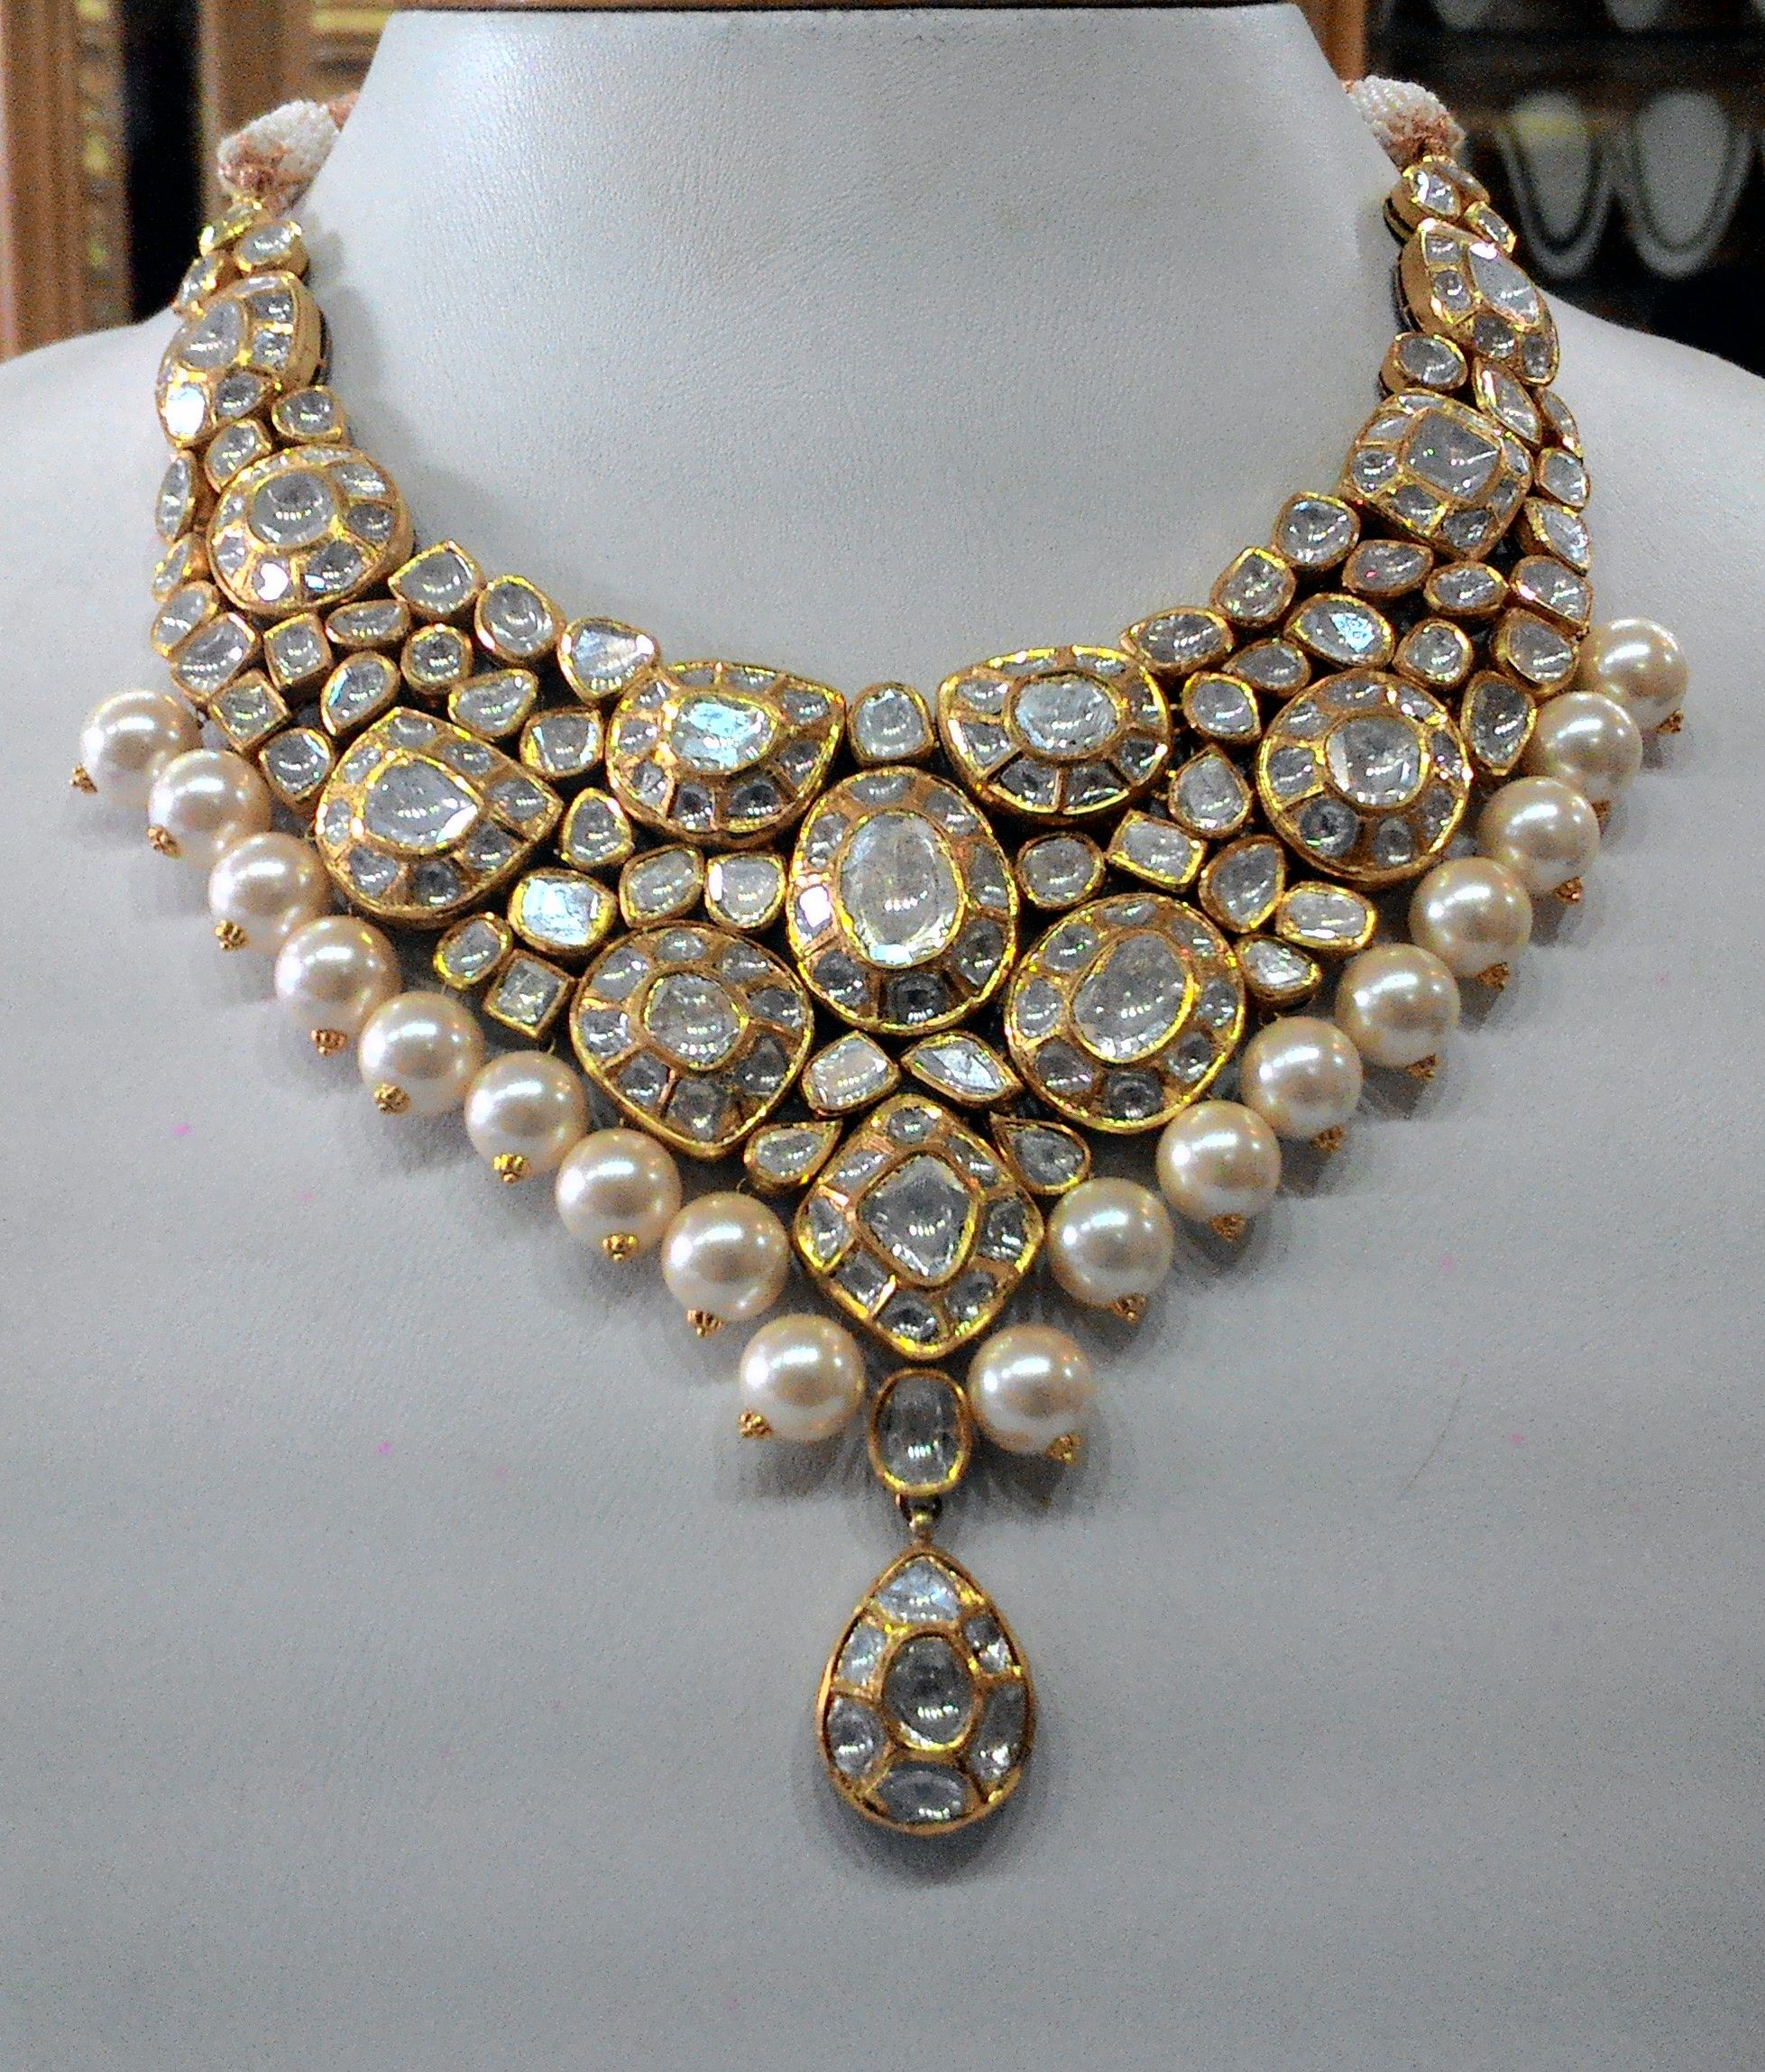 wedding jewelry Vintage necklace ideal for special occasions set with eye popping clear old cut diamonds Kundan Meena Jewelry Vilandi Jewelry Diamond polki jewelry Bridal